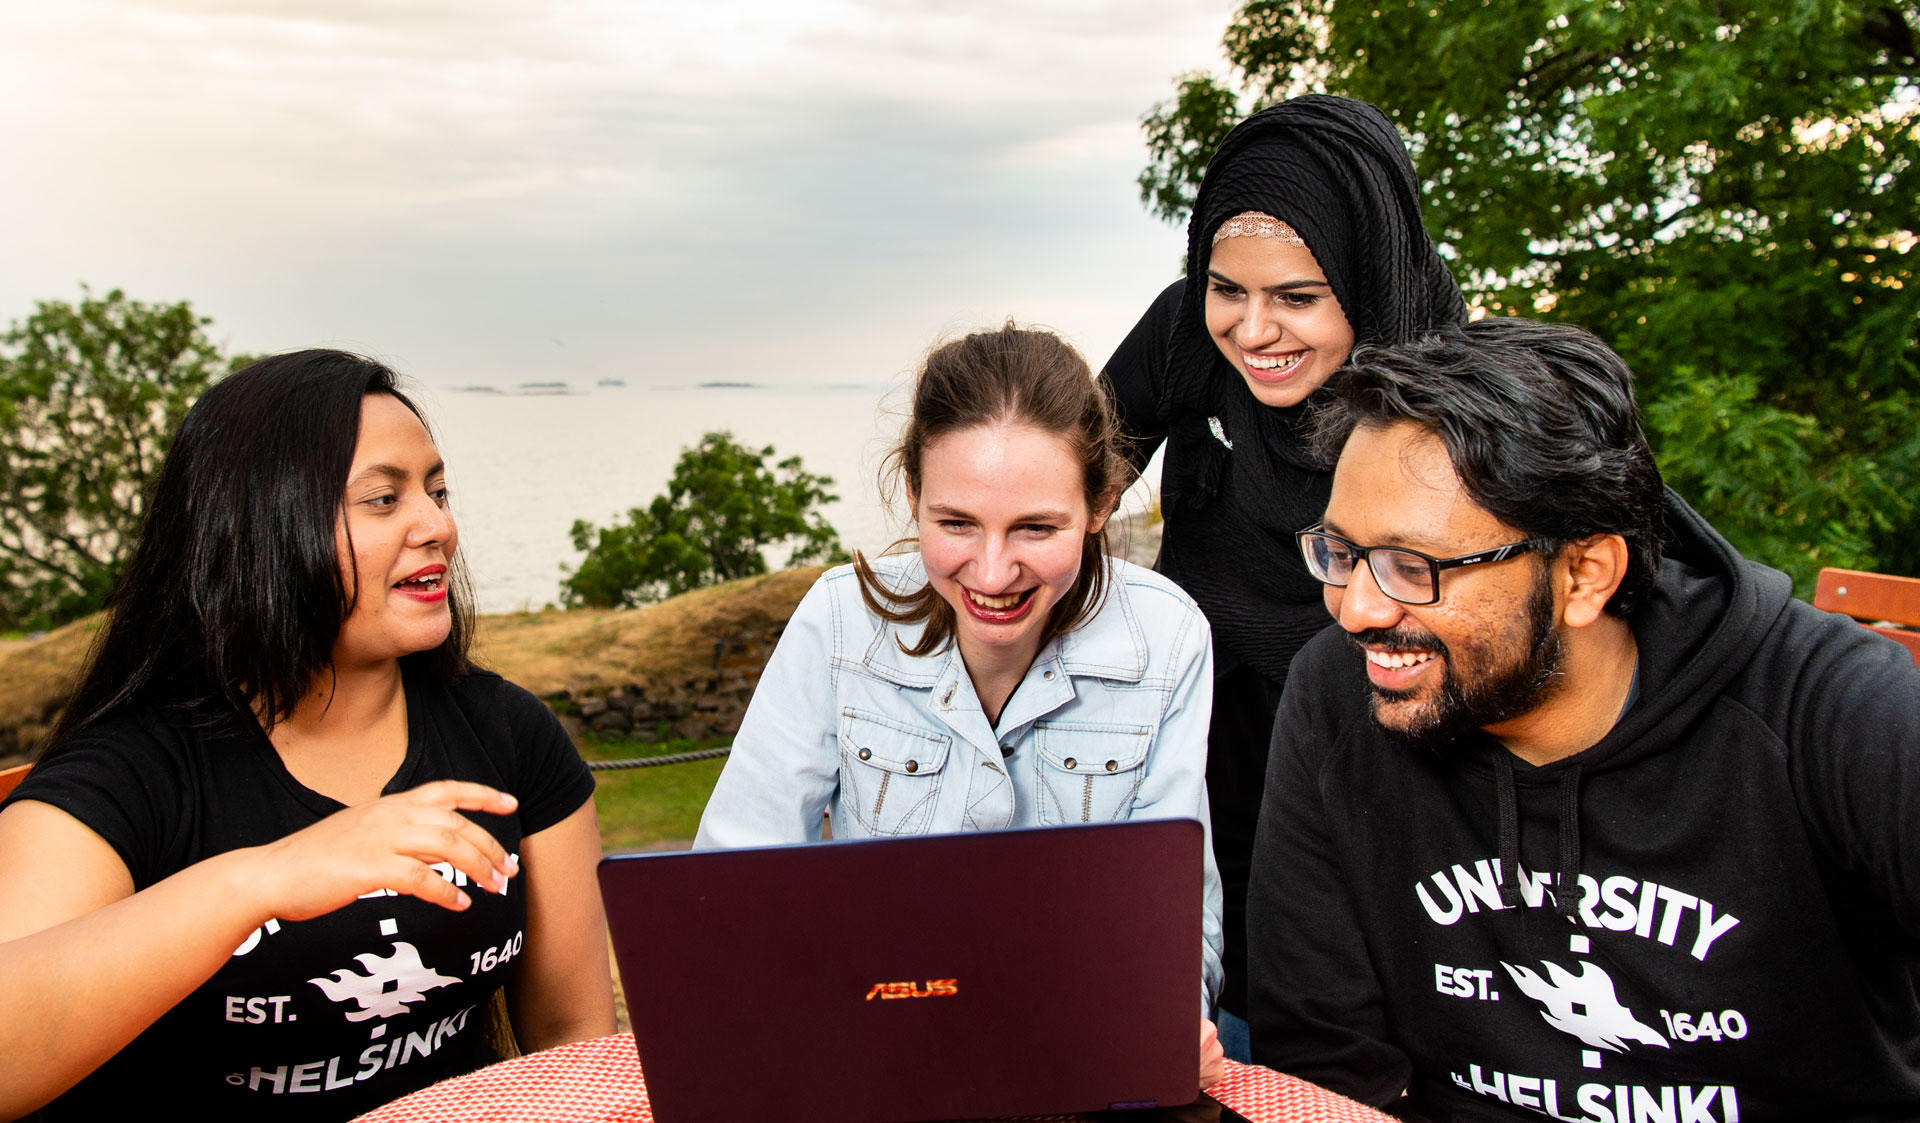 University of Helsinki students studying at Suomenlinna.